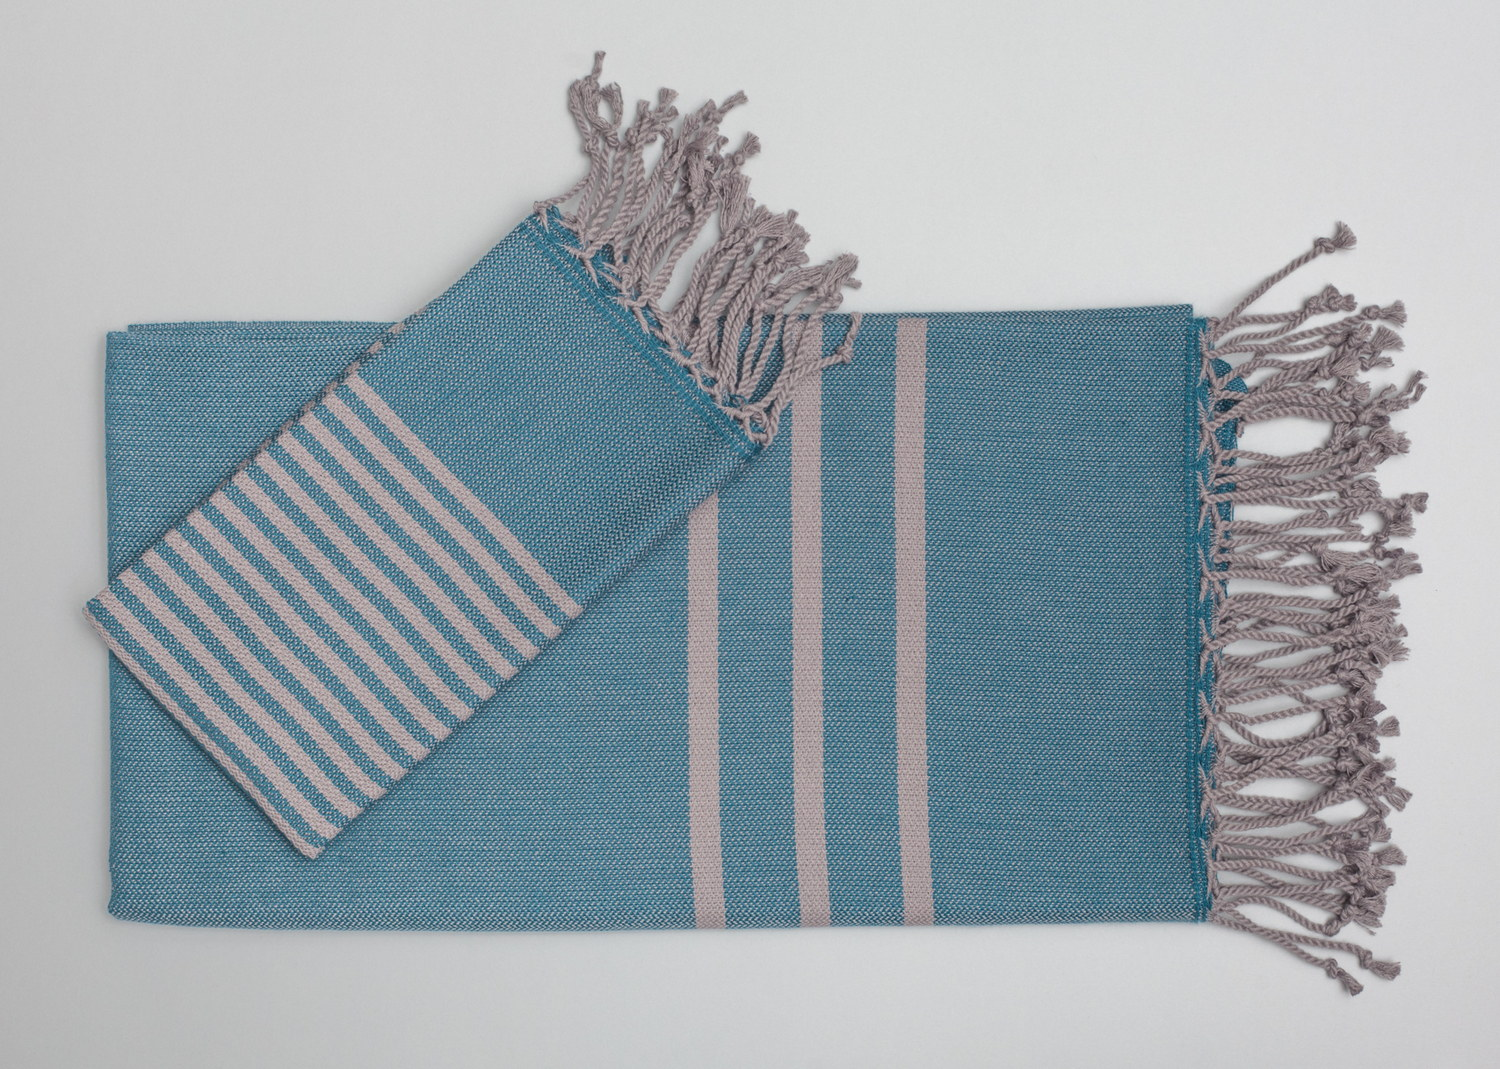 Antiochia Turkish Bath Towels in Gray - teal & gray 1